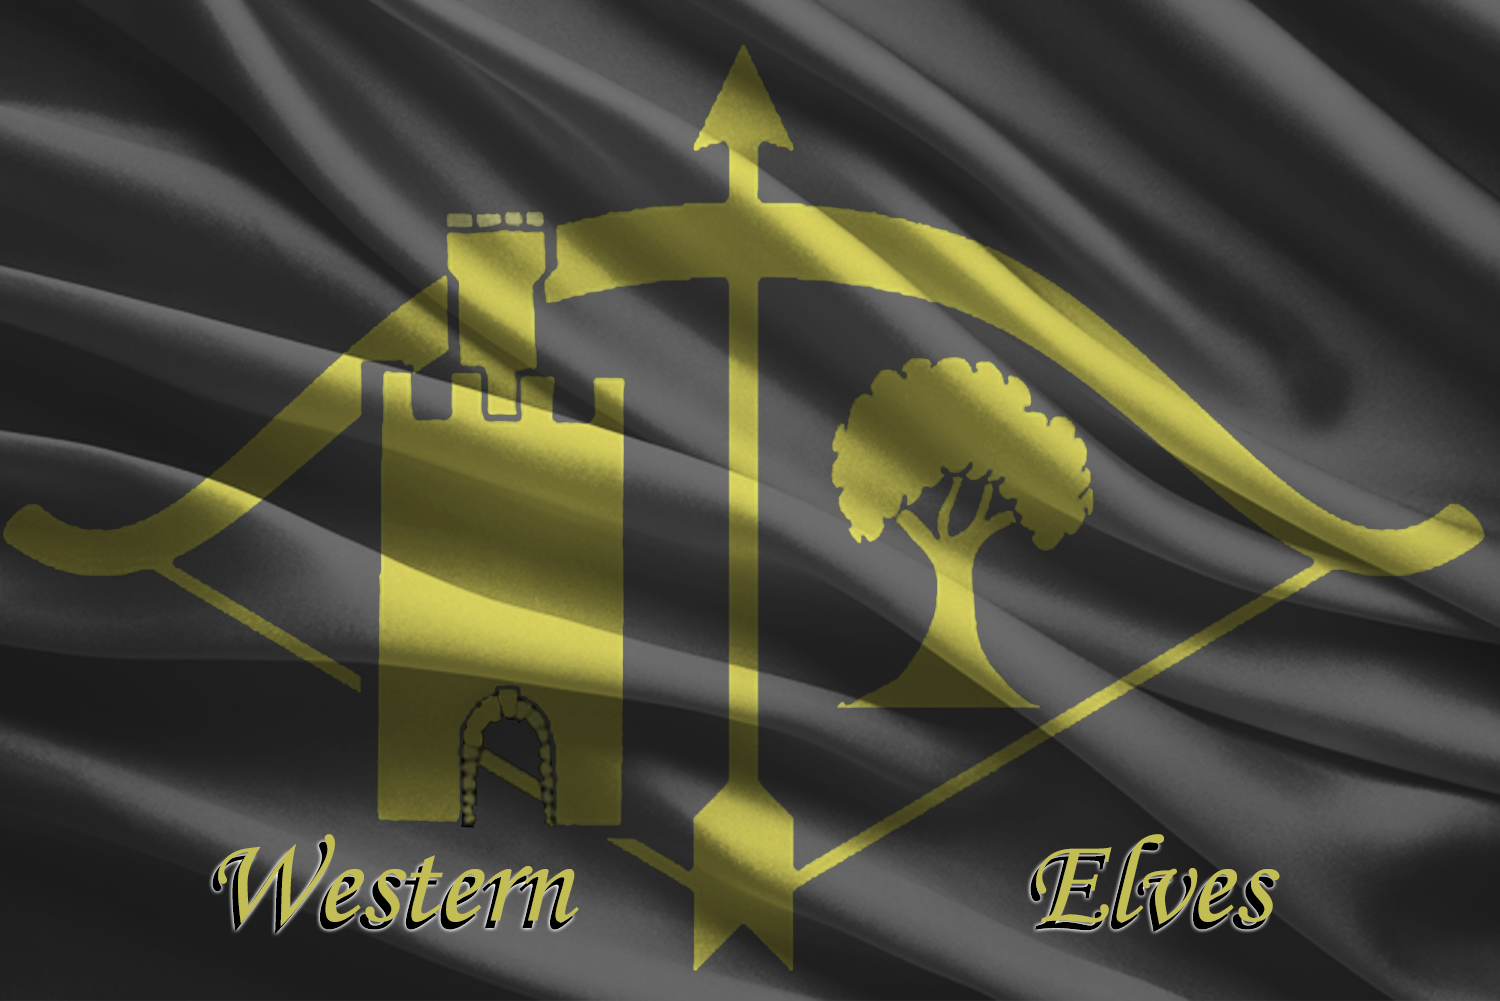 Western Elves Flag